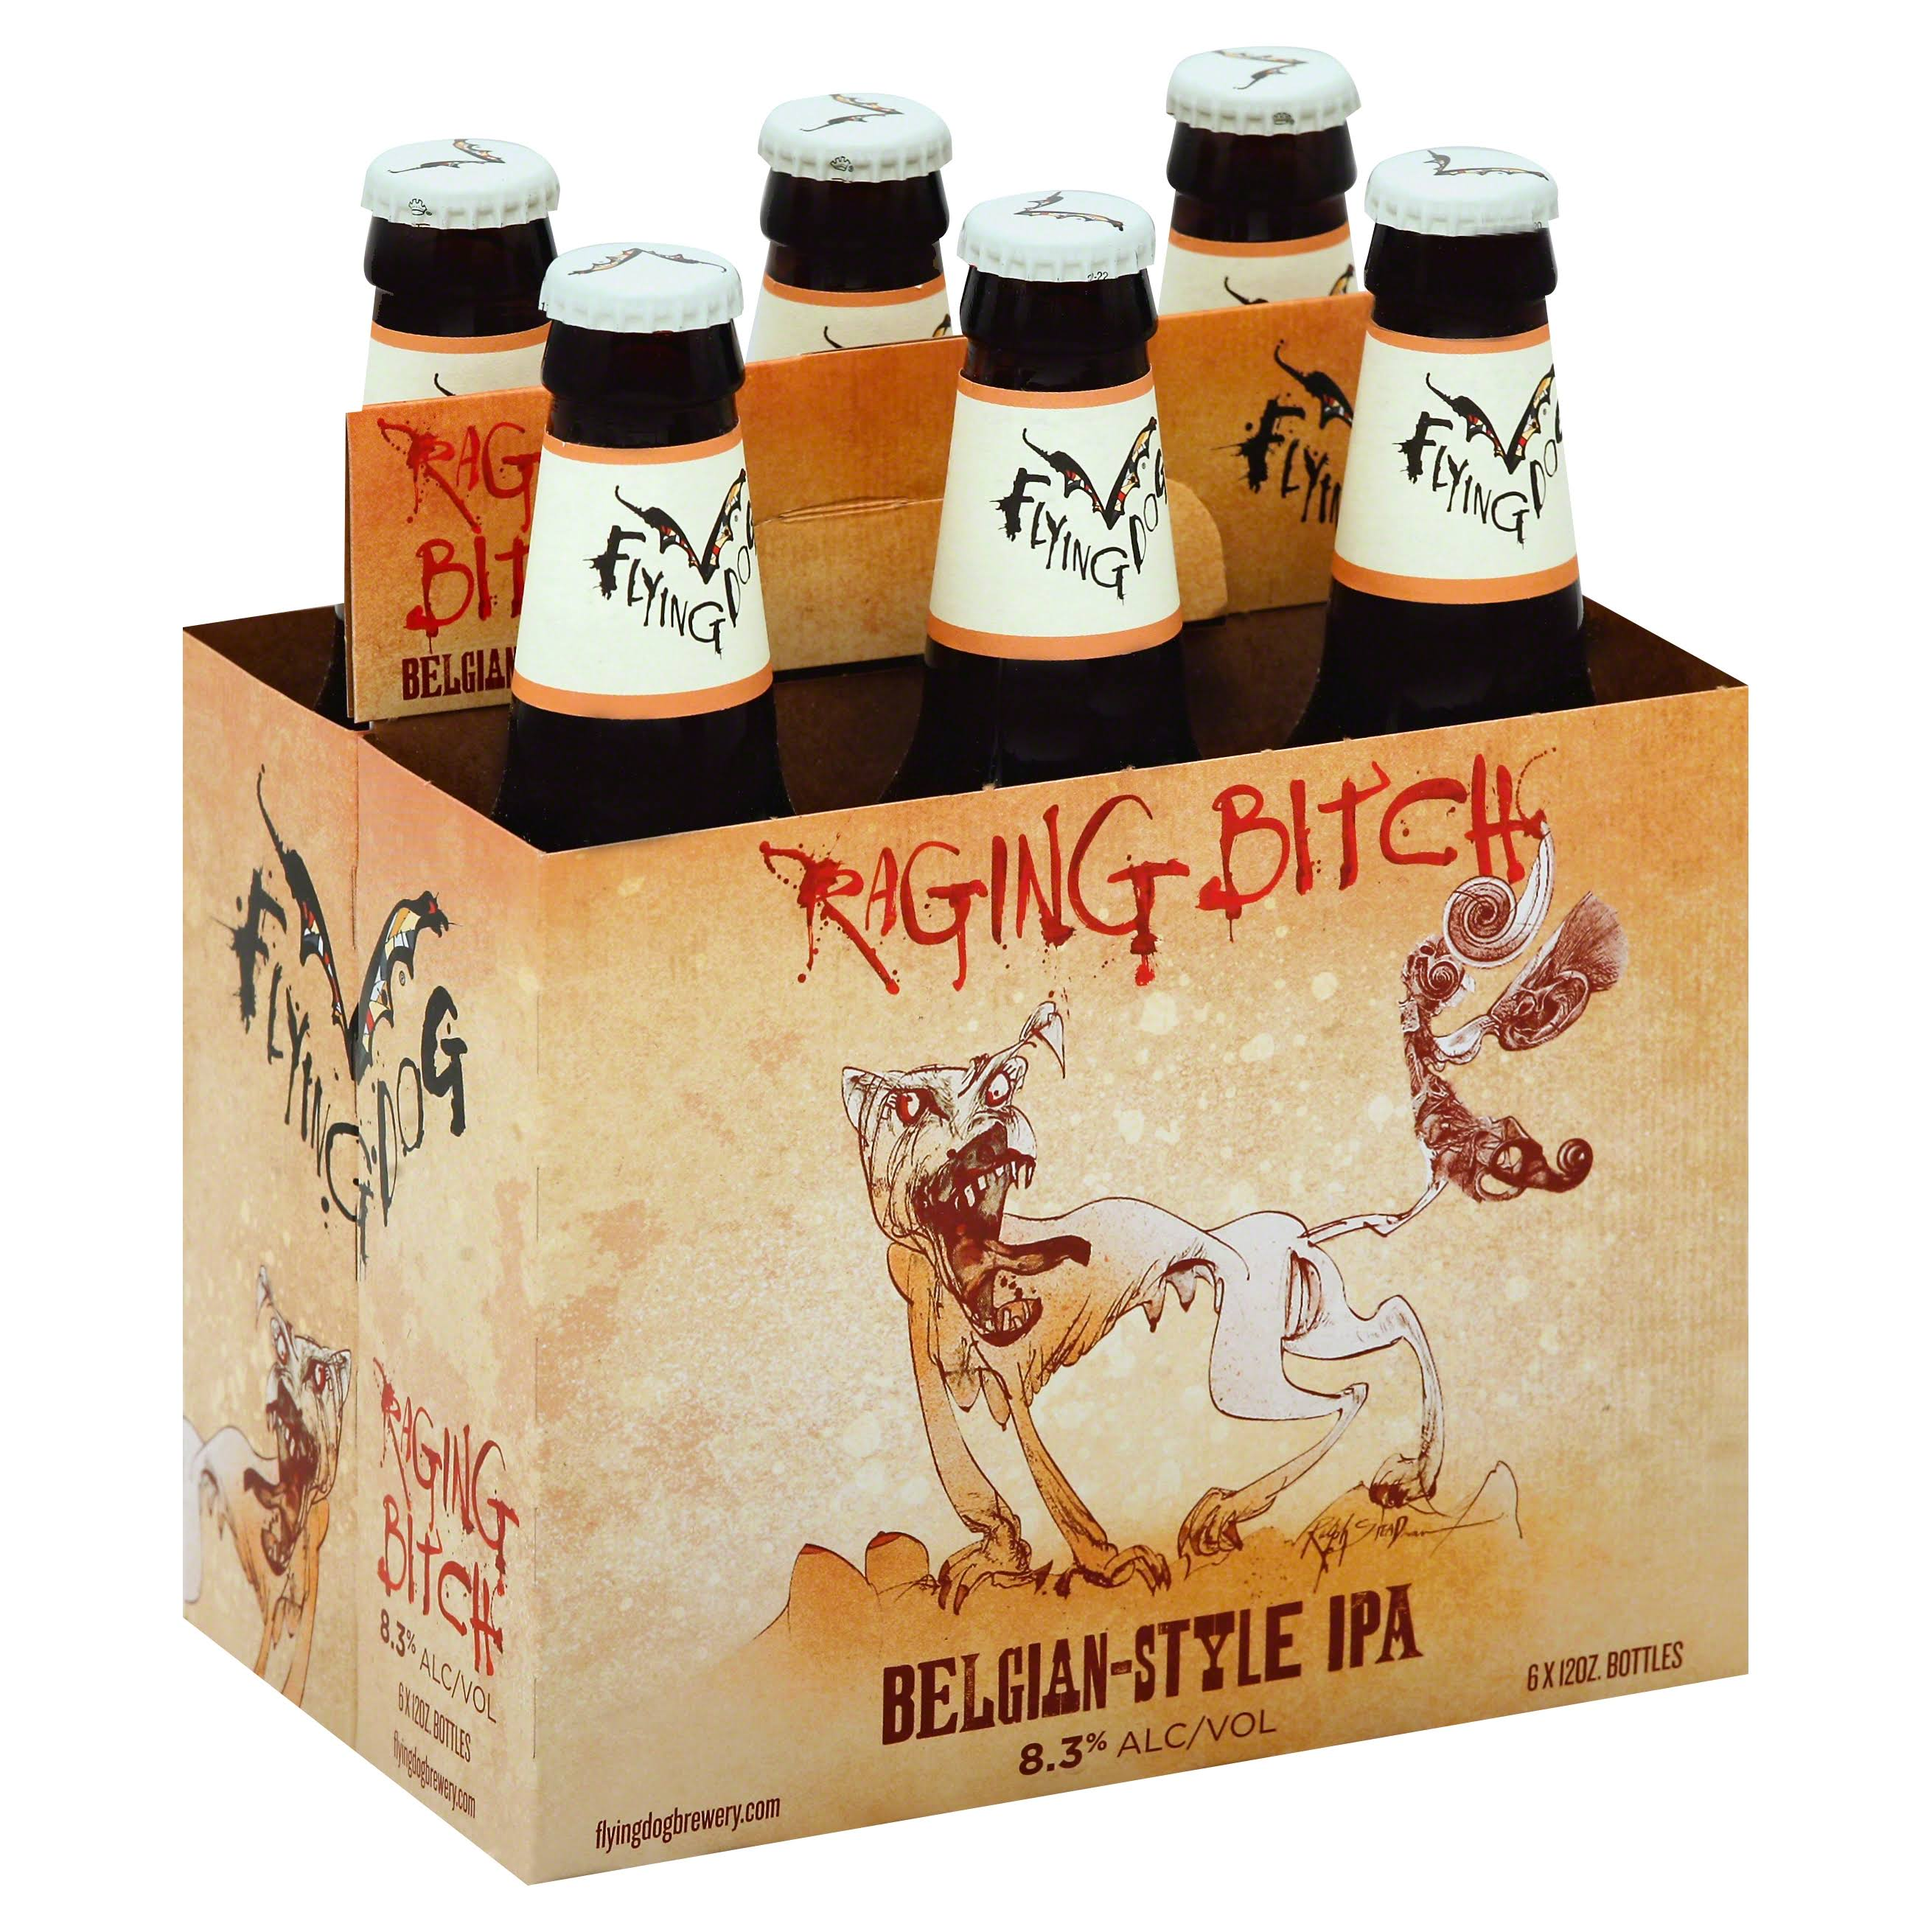 Flying Dog Beer, Raging Bitch Belgian-Style IPA - 6 pack, 12 oz bottles